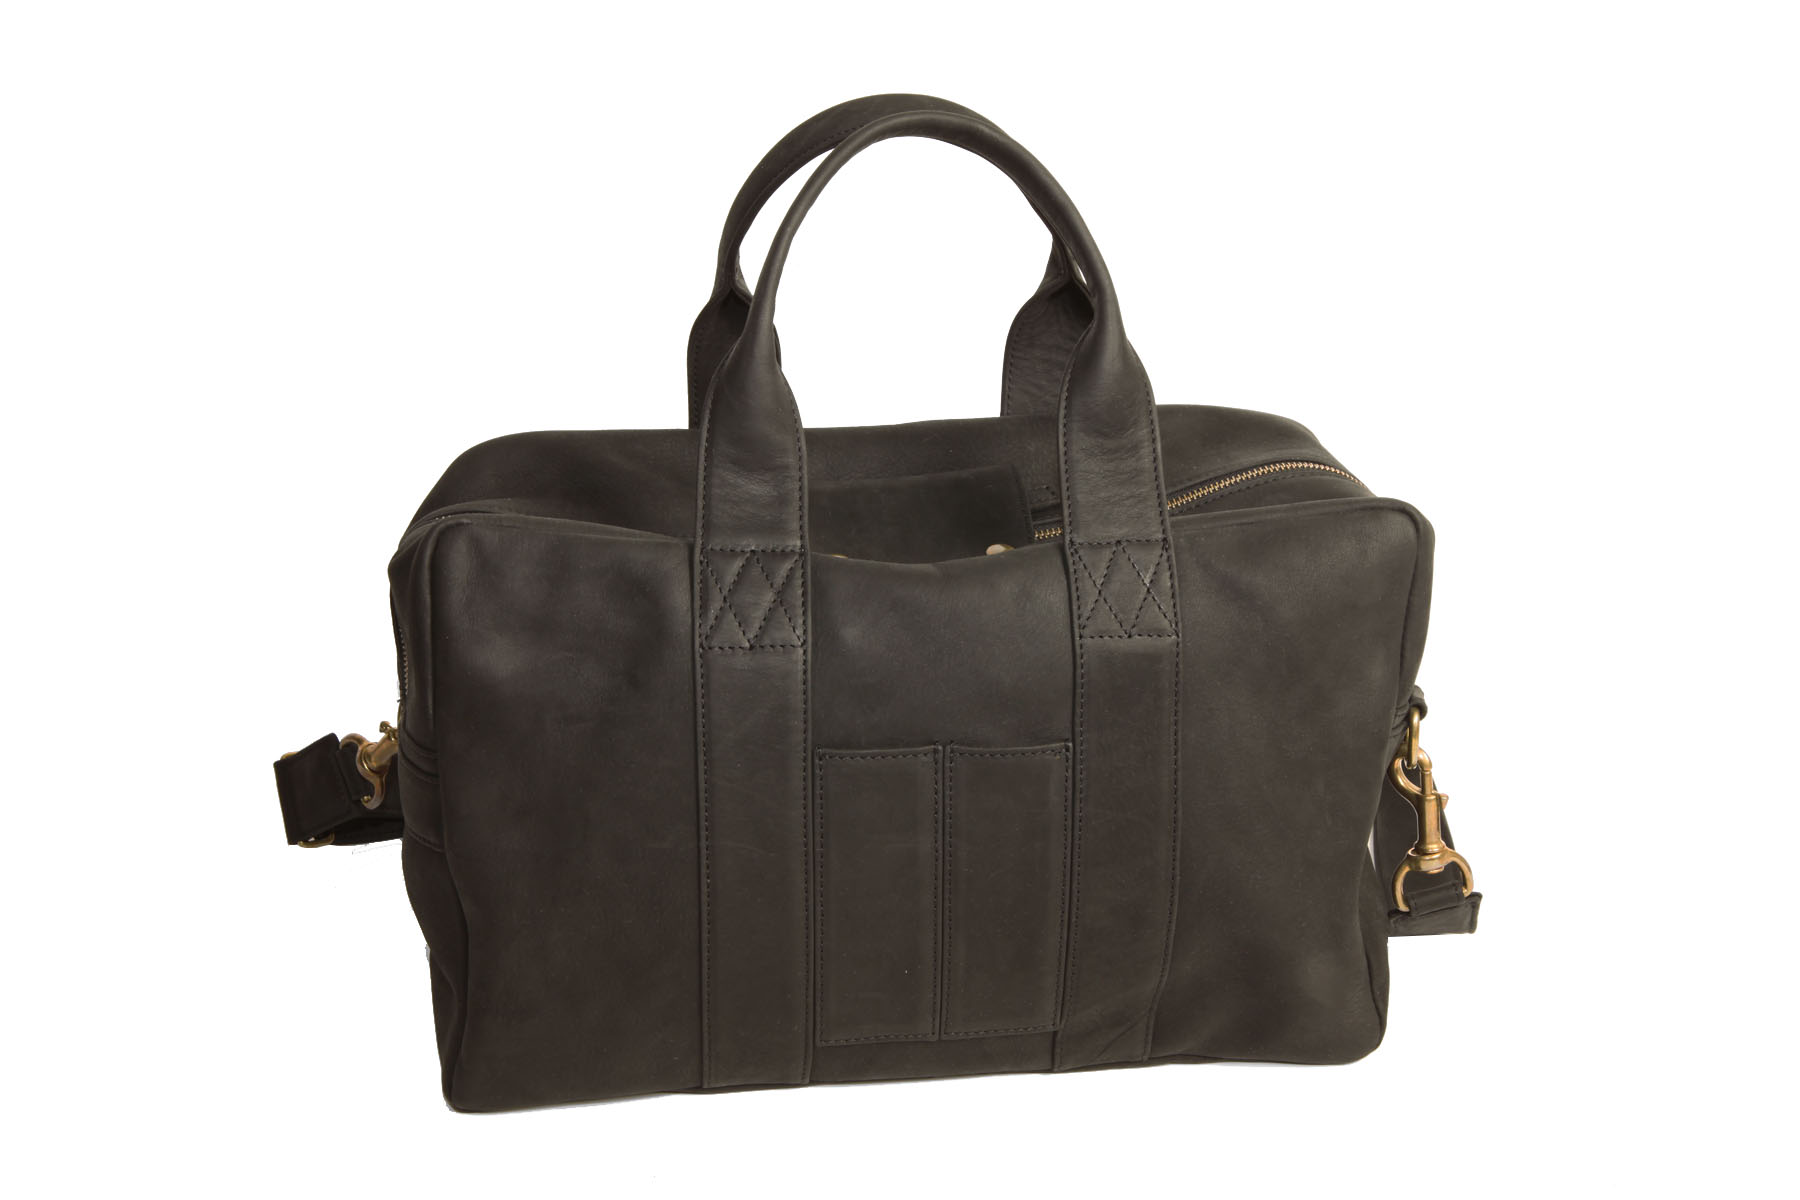 mahiout bag in black leahter and solid brass fittings. http//:www.mahiout.com, http://www.contractor48.com